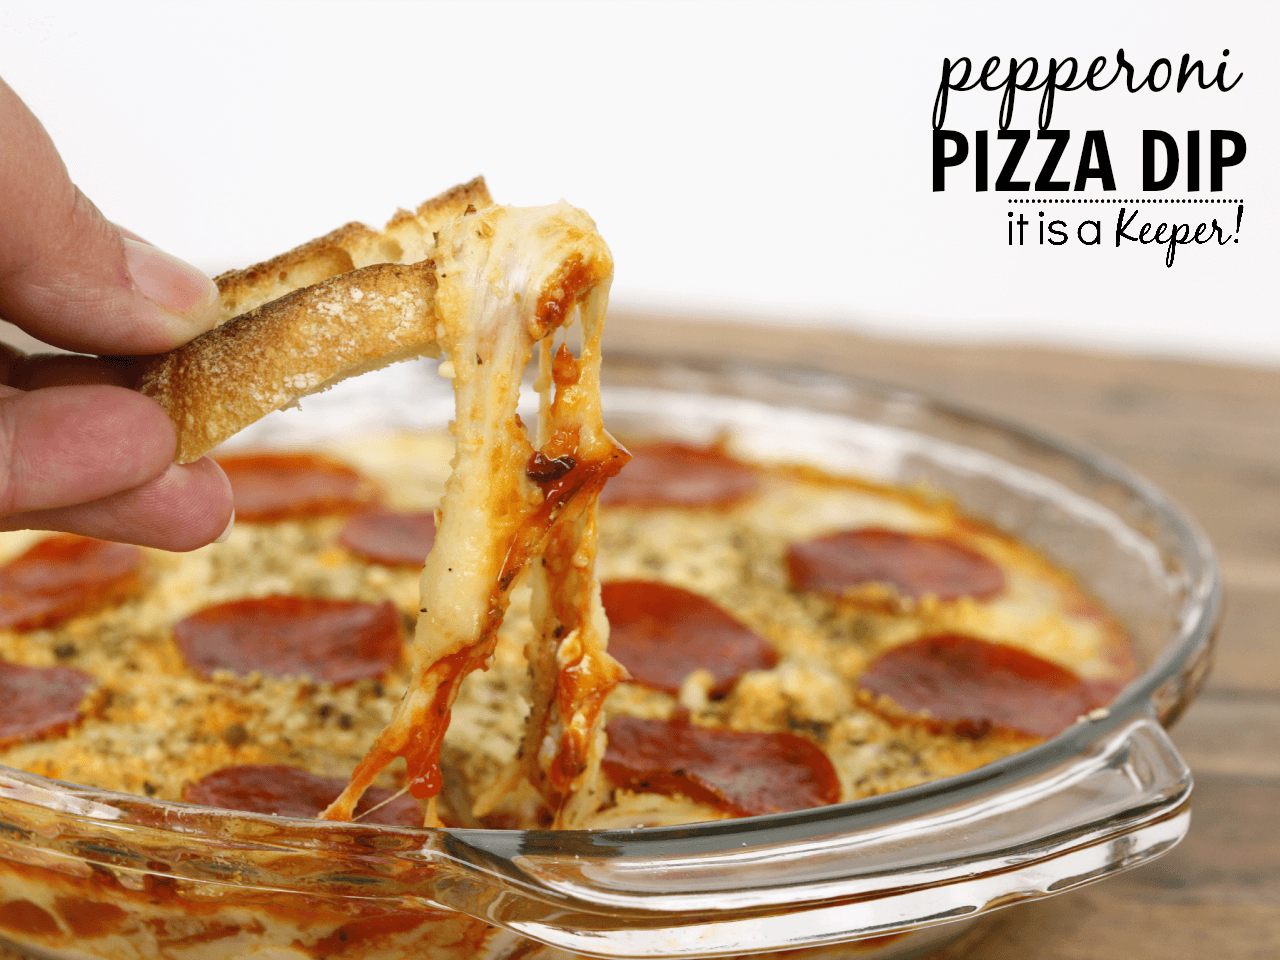 Pepperoni Pizza Dip - an easy appetizer recipe that you can whip up in under 30 minutes